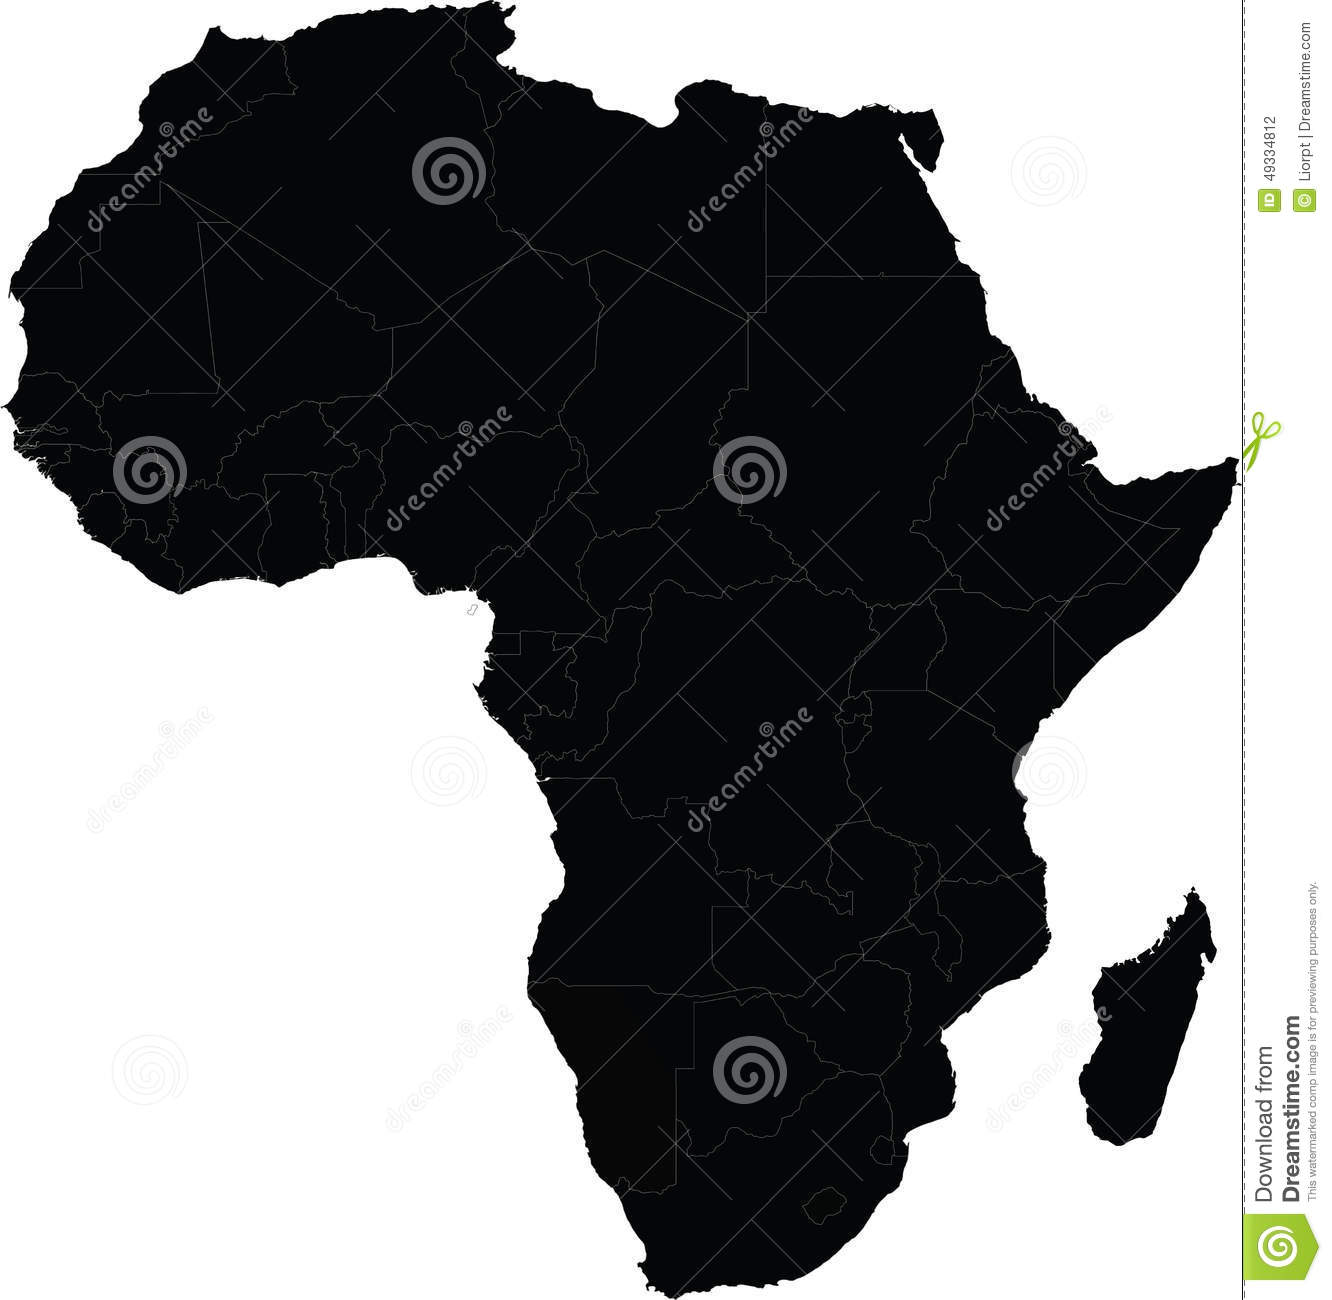 Map Of Africa Vector Stock Vector Illustration Of Nigeria 49334812